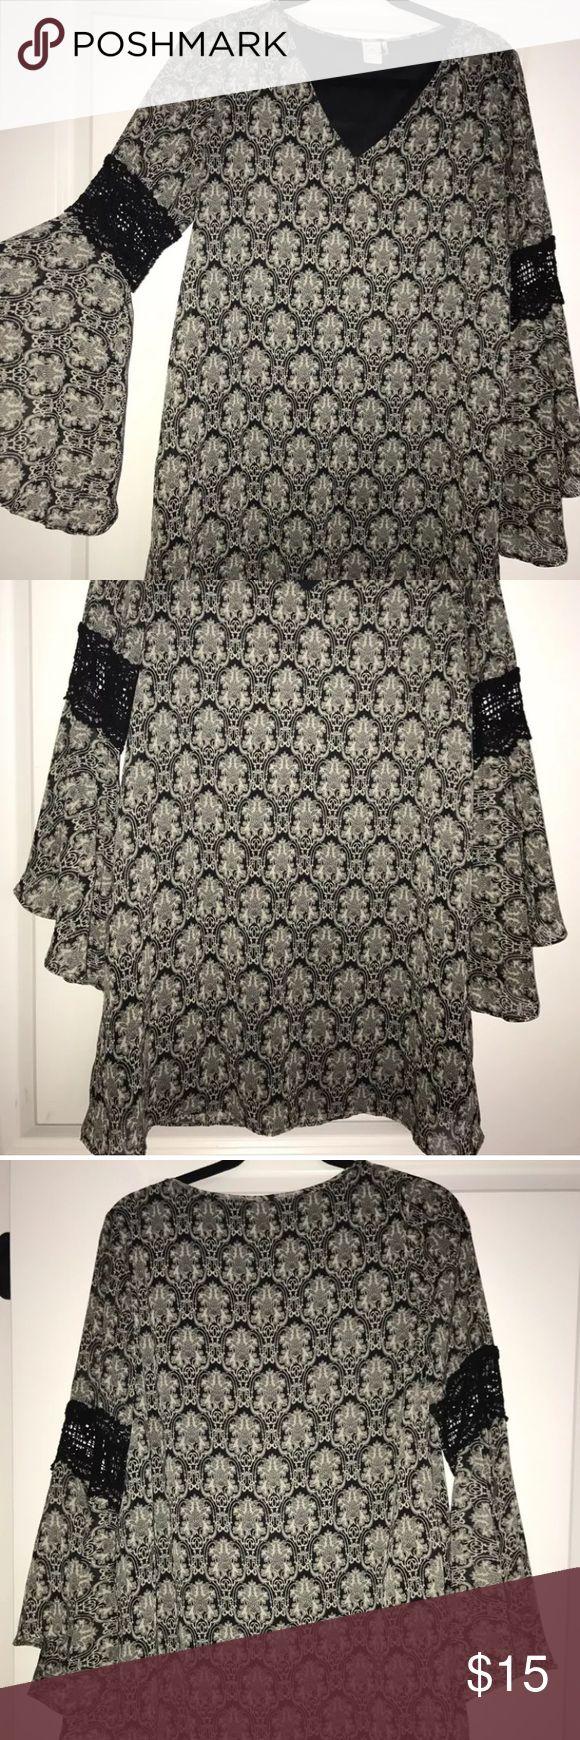 Womens casual dress Cute dress for any occasion! Great condition! Wore only once! Paper Crane Dresses